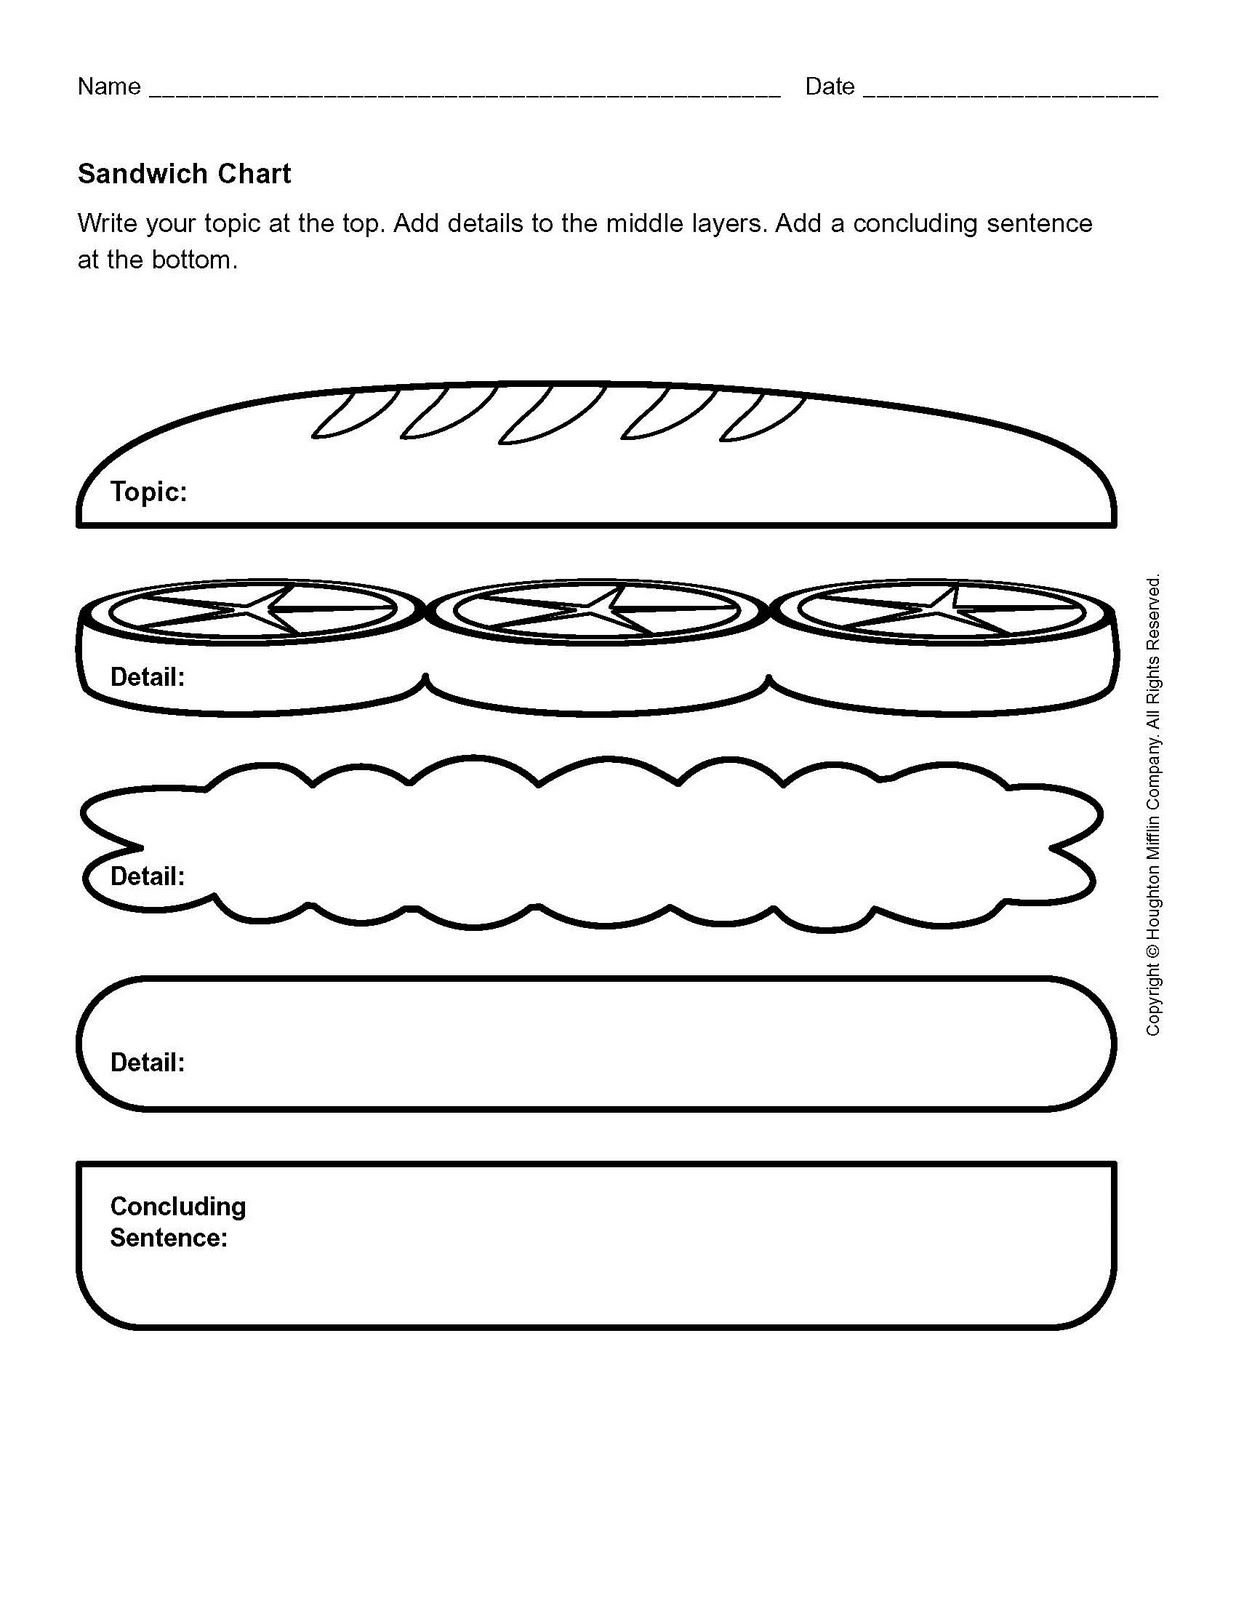 Central Catholic Writing The Essay Elementary Writing Graphic Organizers 2nd Grade Writing [ 1600 x 1236 Pixel ]